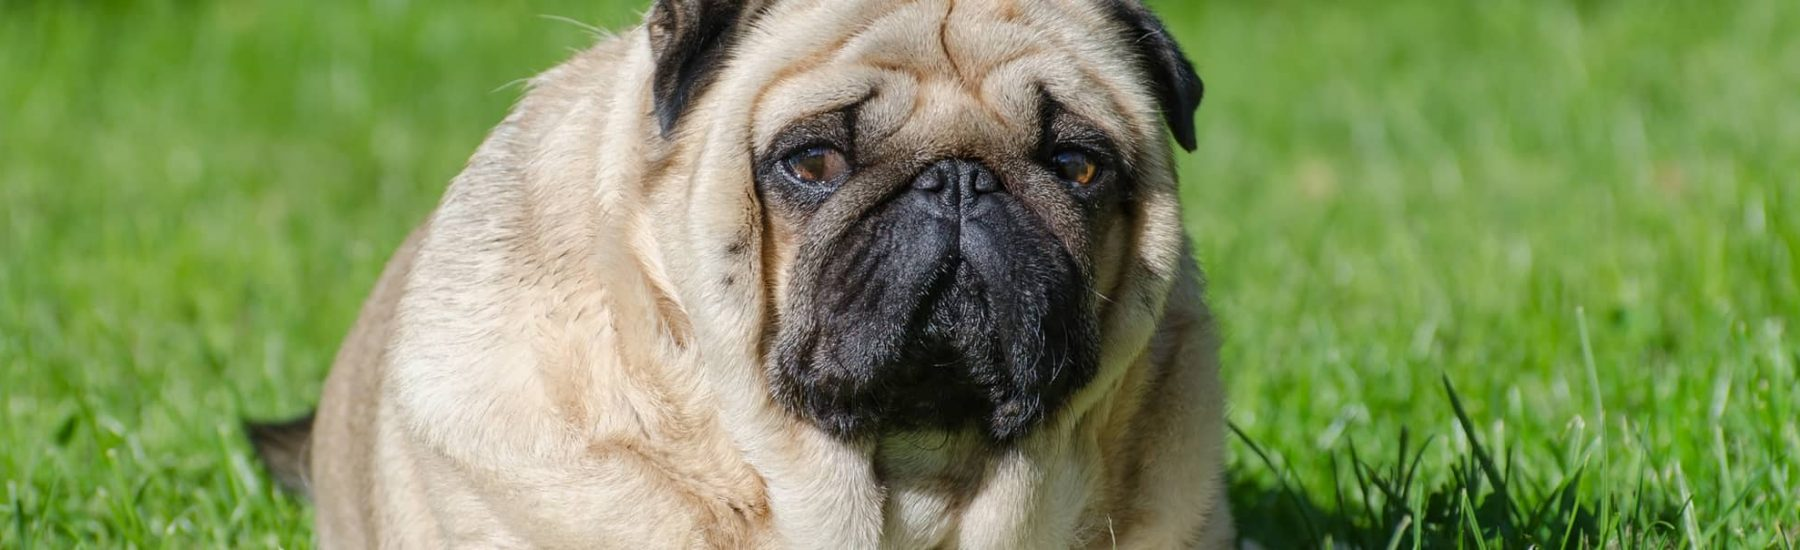 Overweight french bull dog on grass